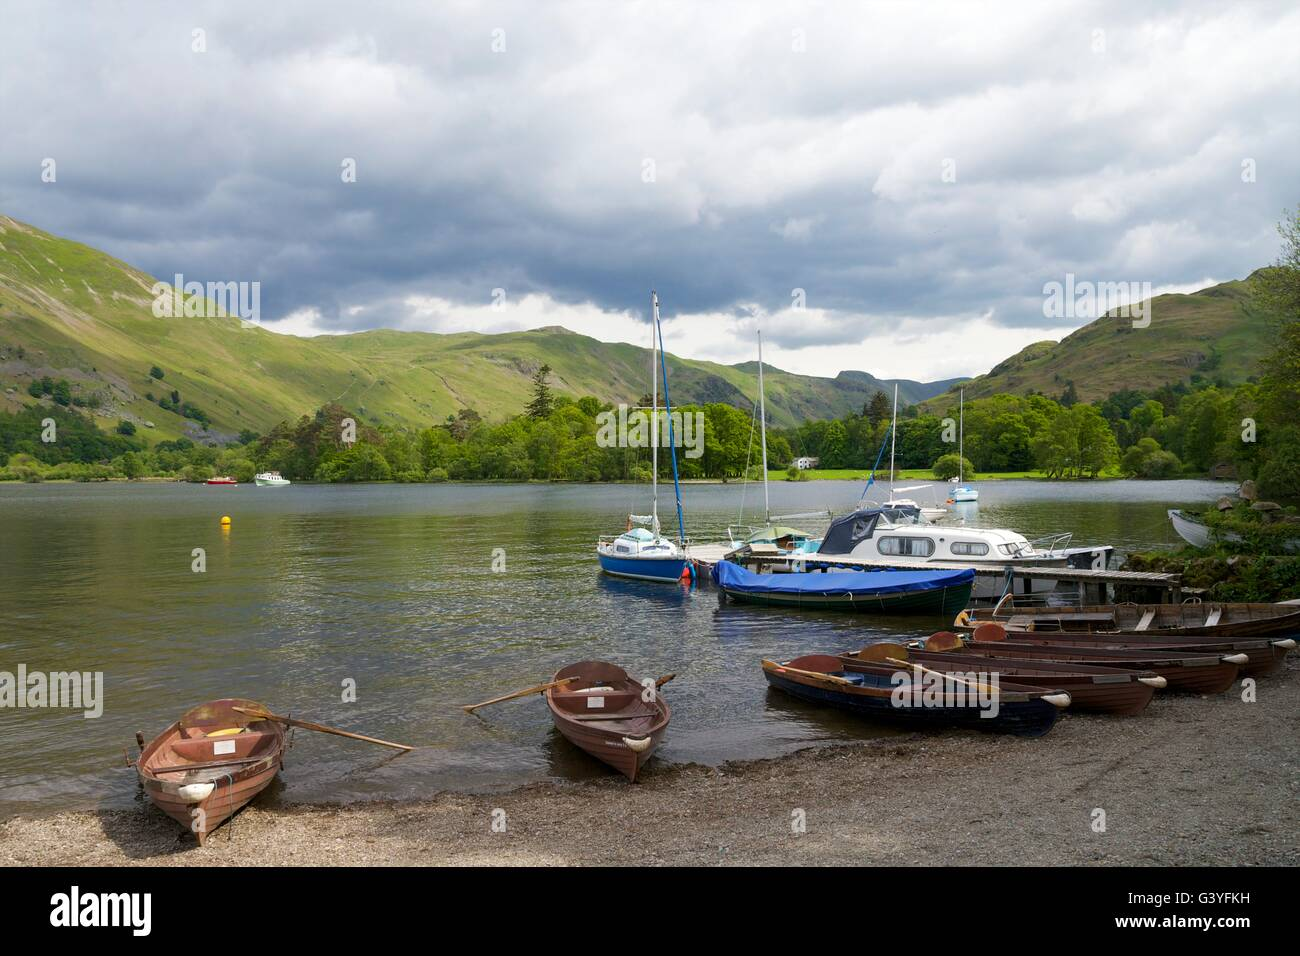 Rowing boats for hire, Glenridding, Ullswater, Lake District National Park, Cumbria, England, UK, GB,  Europe - Stock Image